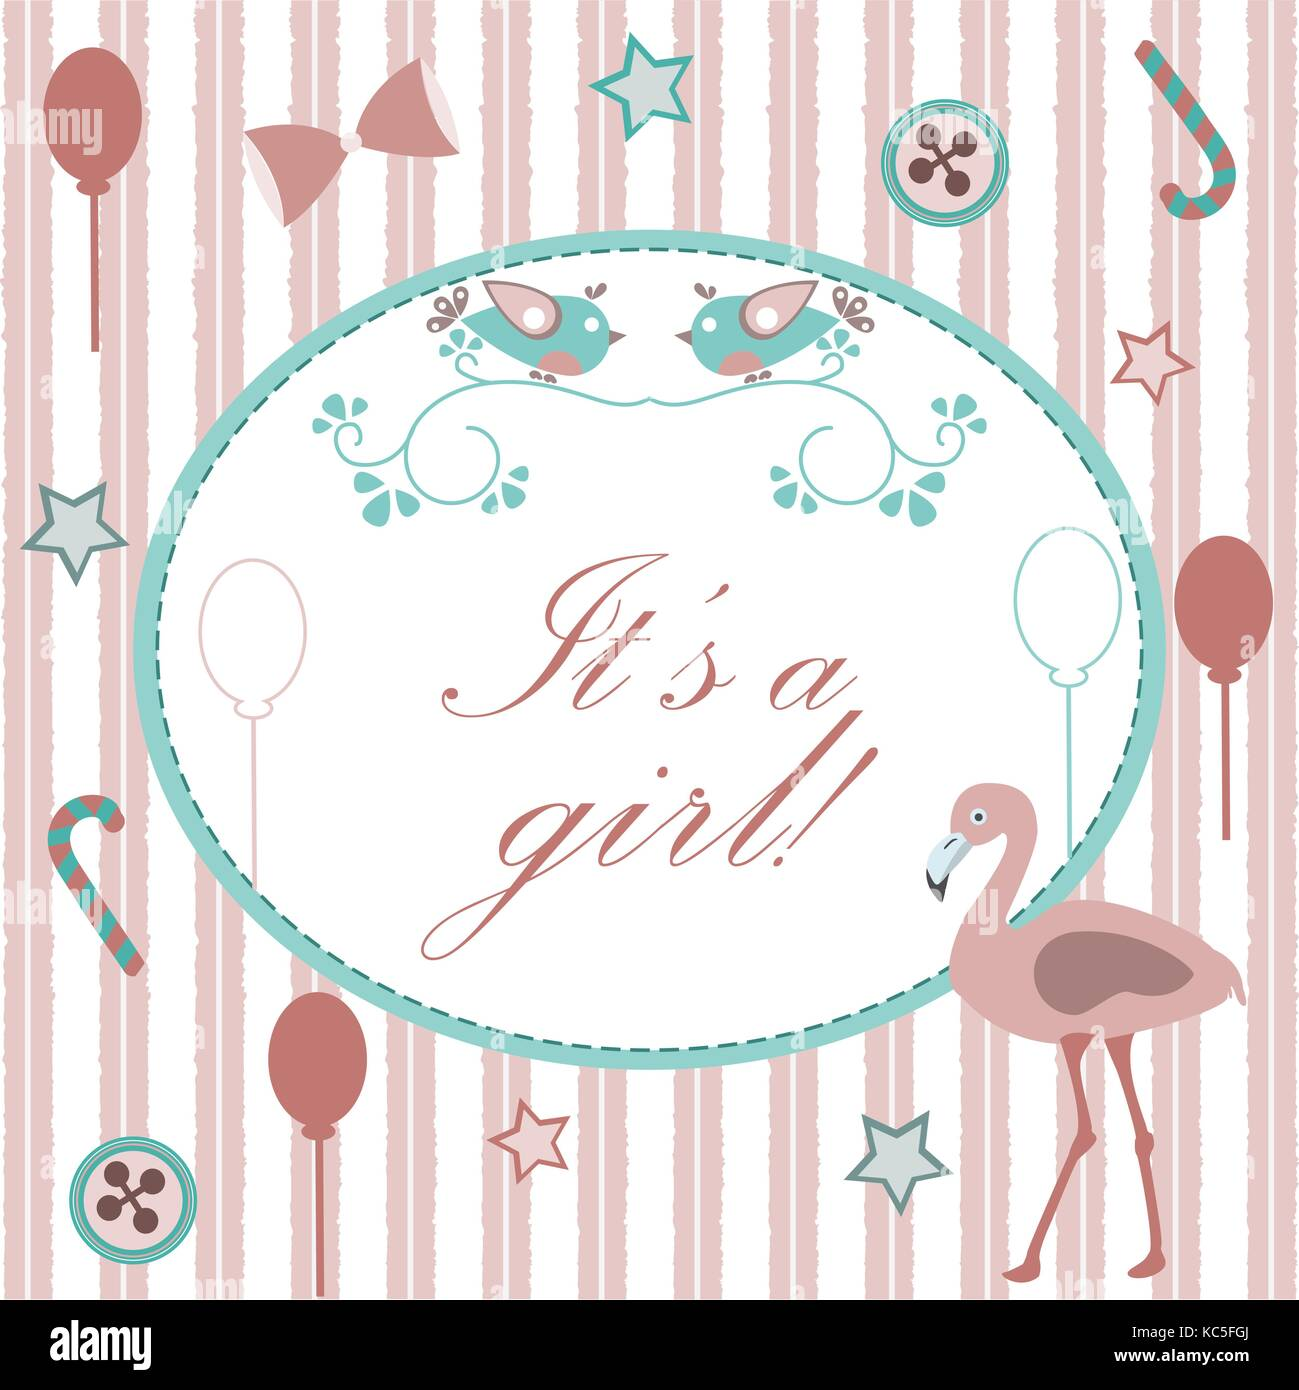 Baby girl birth announcement baby shower invitation card cute pink baby girl birth announcement baby shower invitation card cute pink flamingo bird announces the arrival of a baby girl retro card design pink backg filmwisefo Image collections